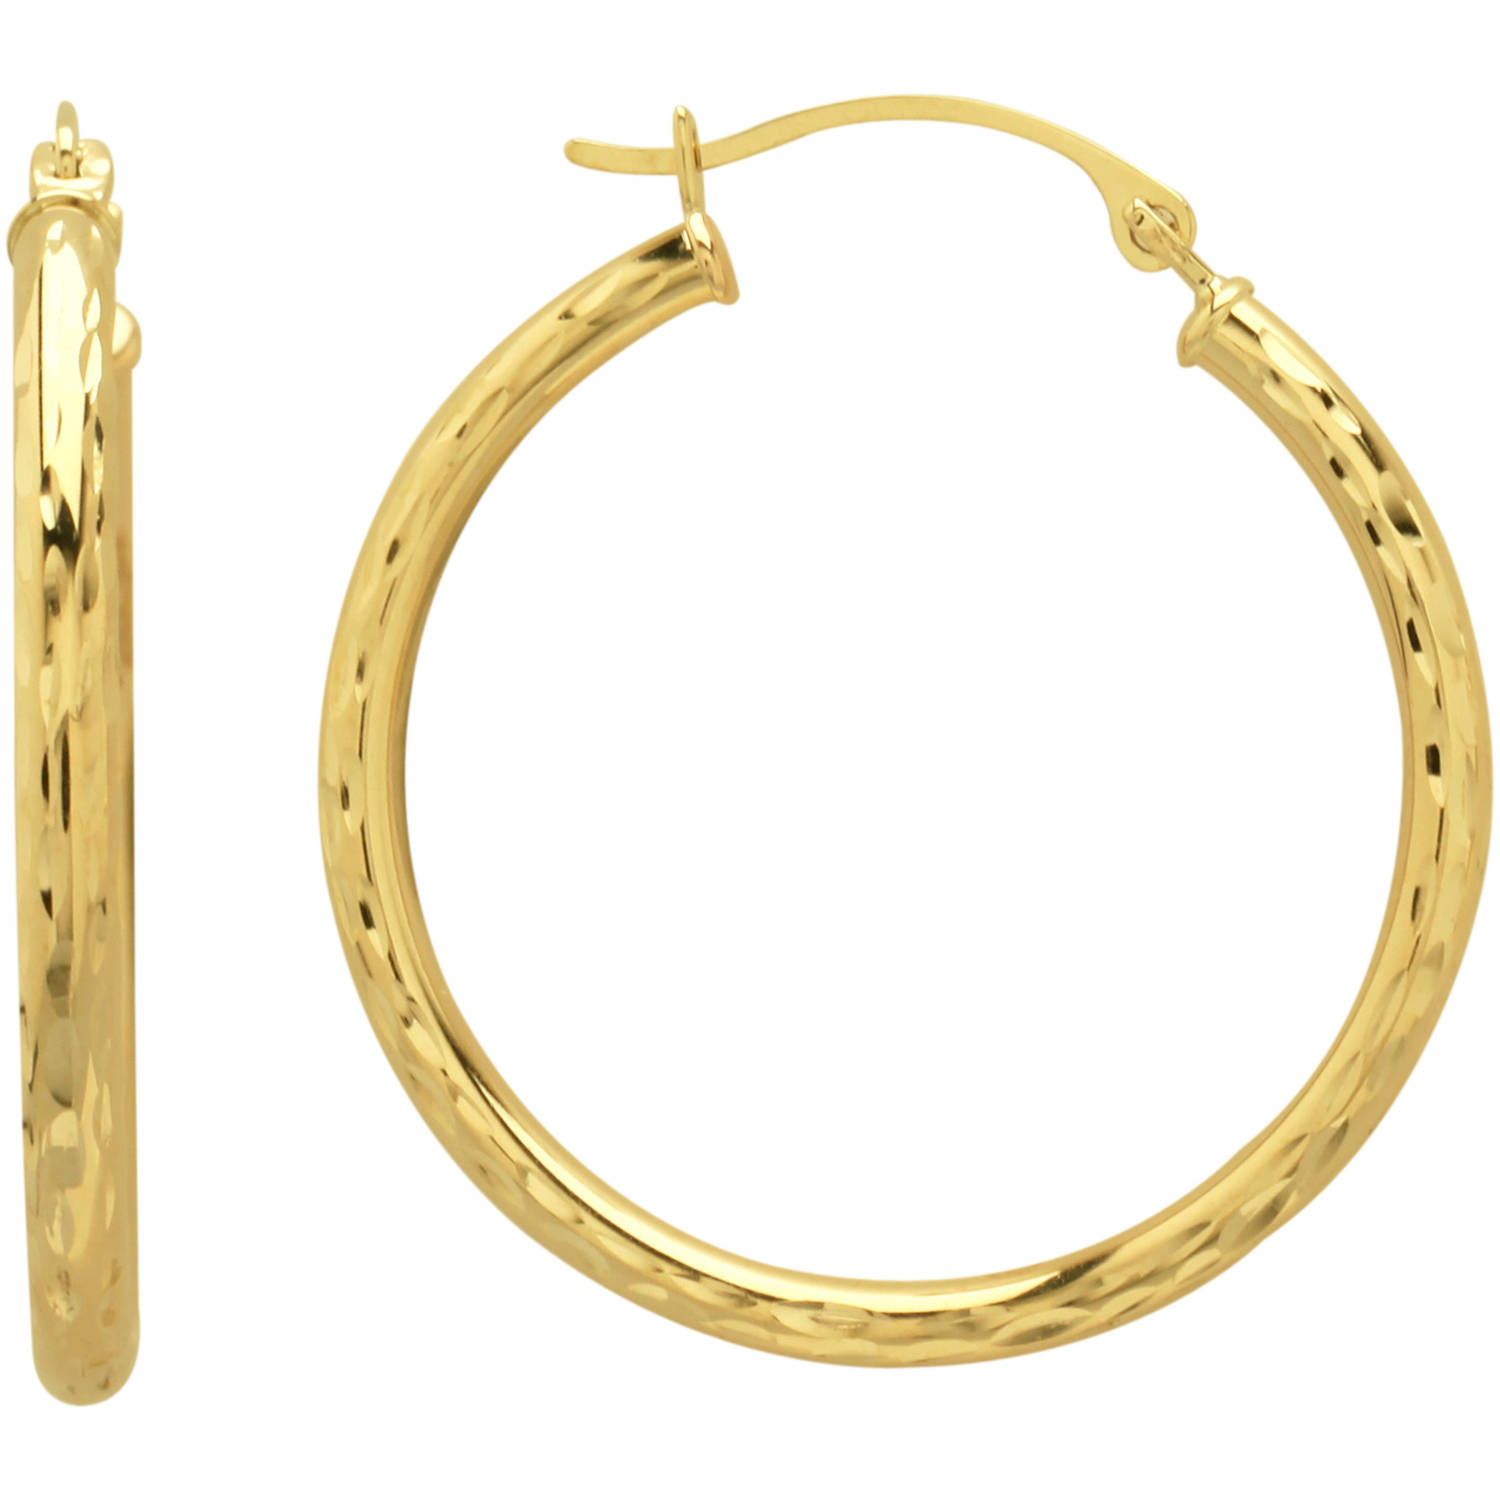 Simply Gold 10kt Yellow Diamond Cut Hoop Earrings